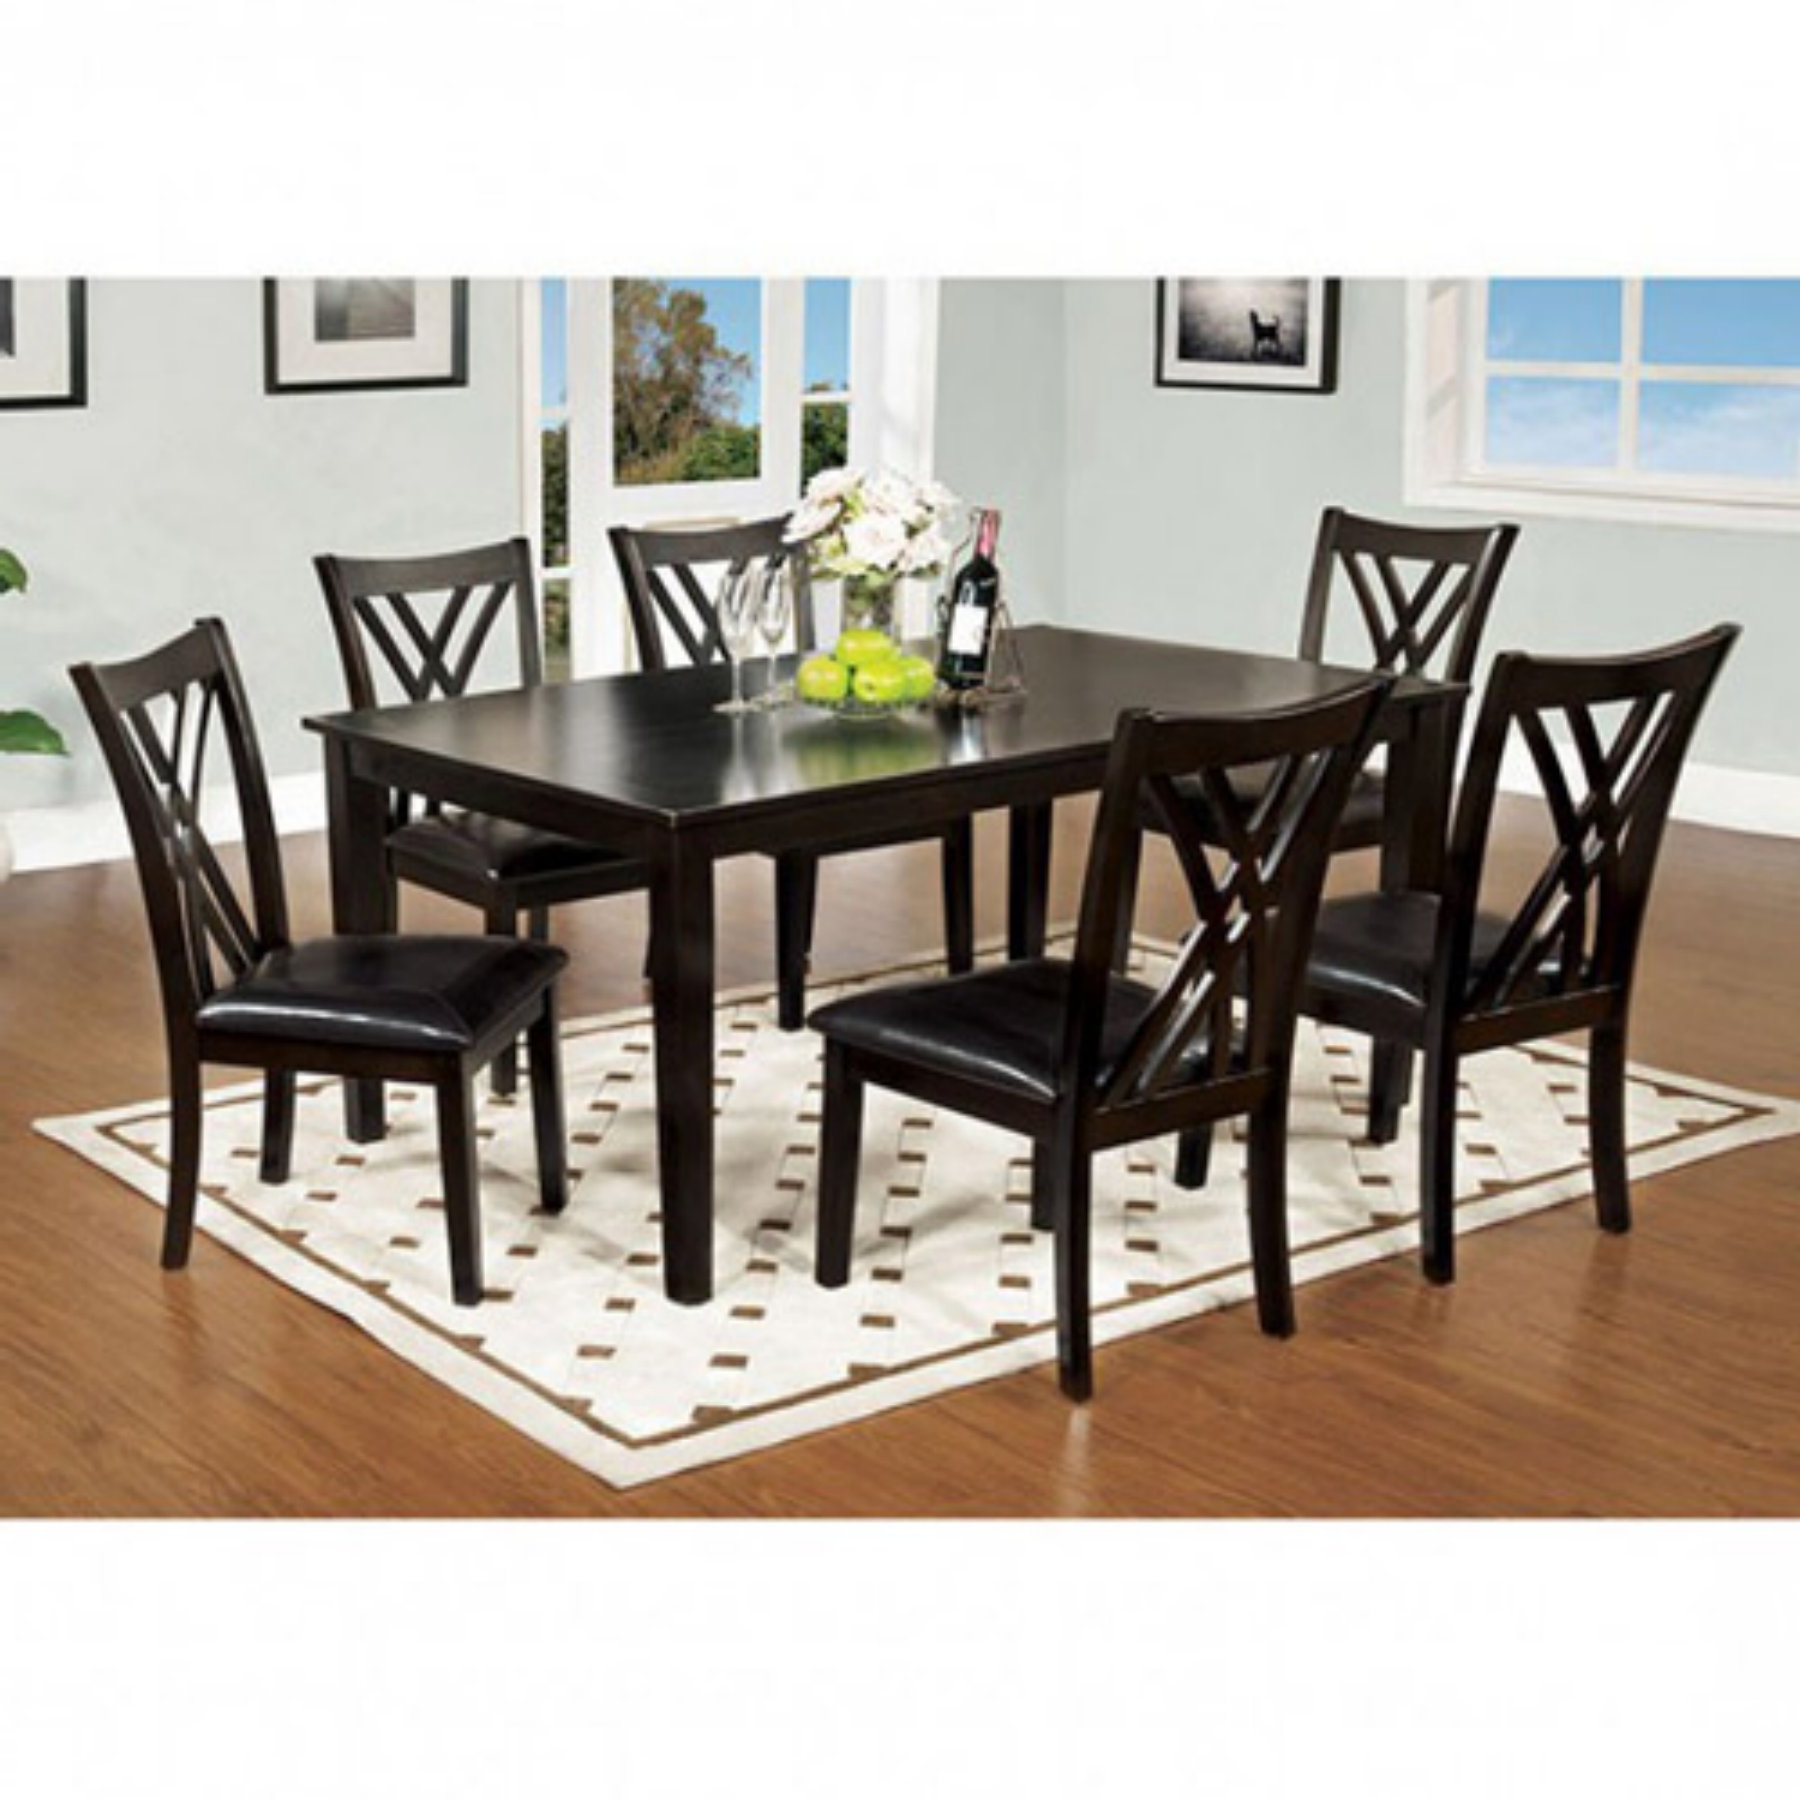 Well Liked Craftsman 7 Piece Rectangular Extension Dining Sets With Arm & Uph Side Chairs Throughout Benzara Springhill Enticing 7 Piece Rectangular Dining Table Set In (View 23 of 25)